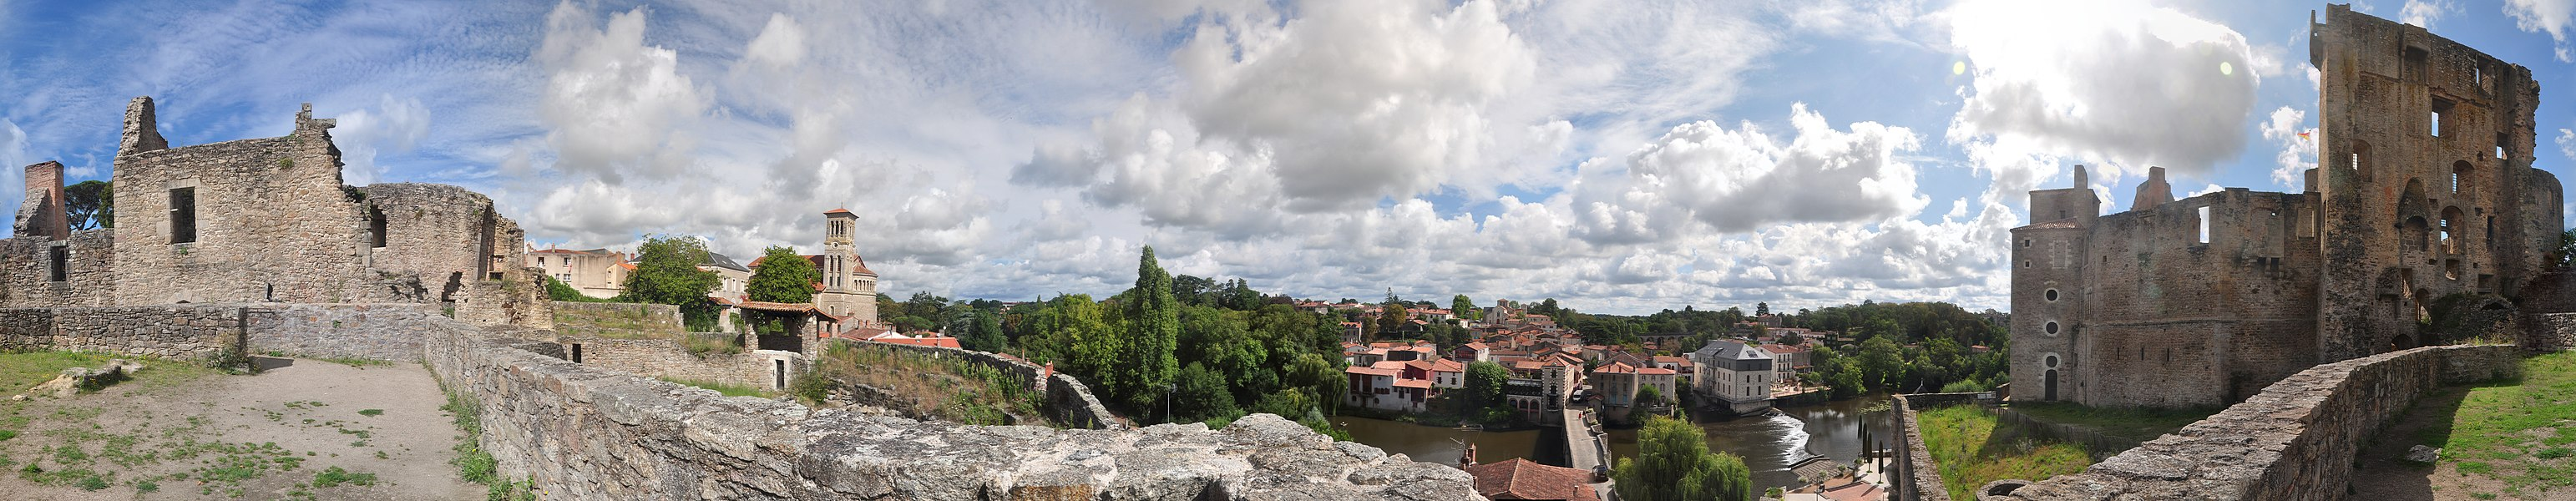 Clisson from the castle.